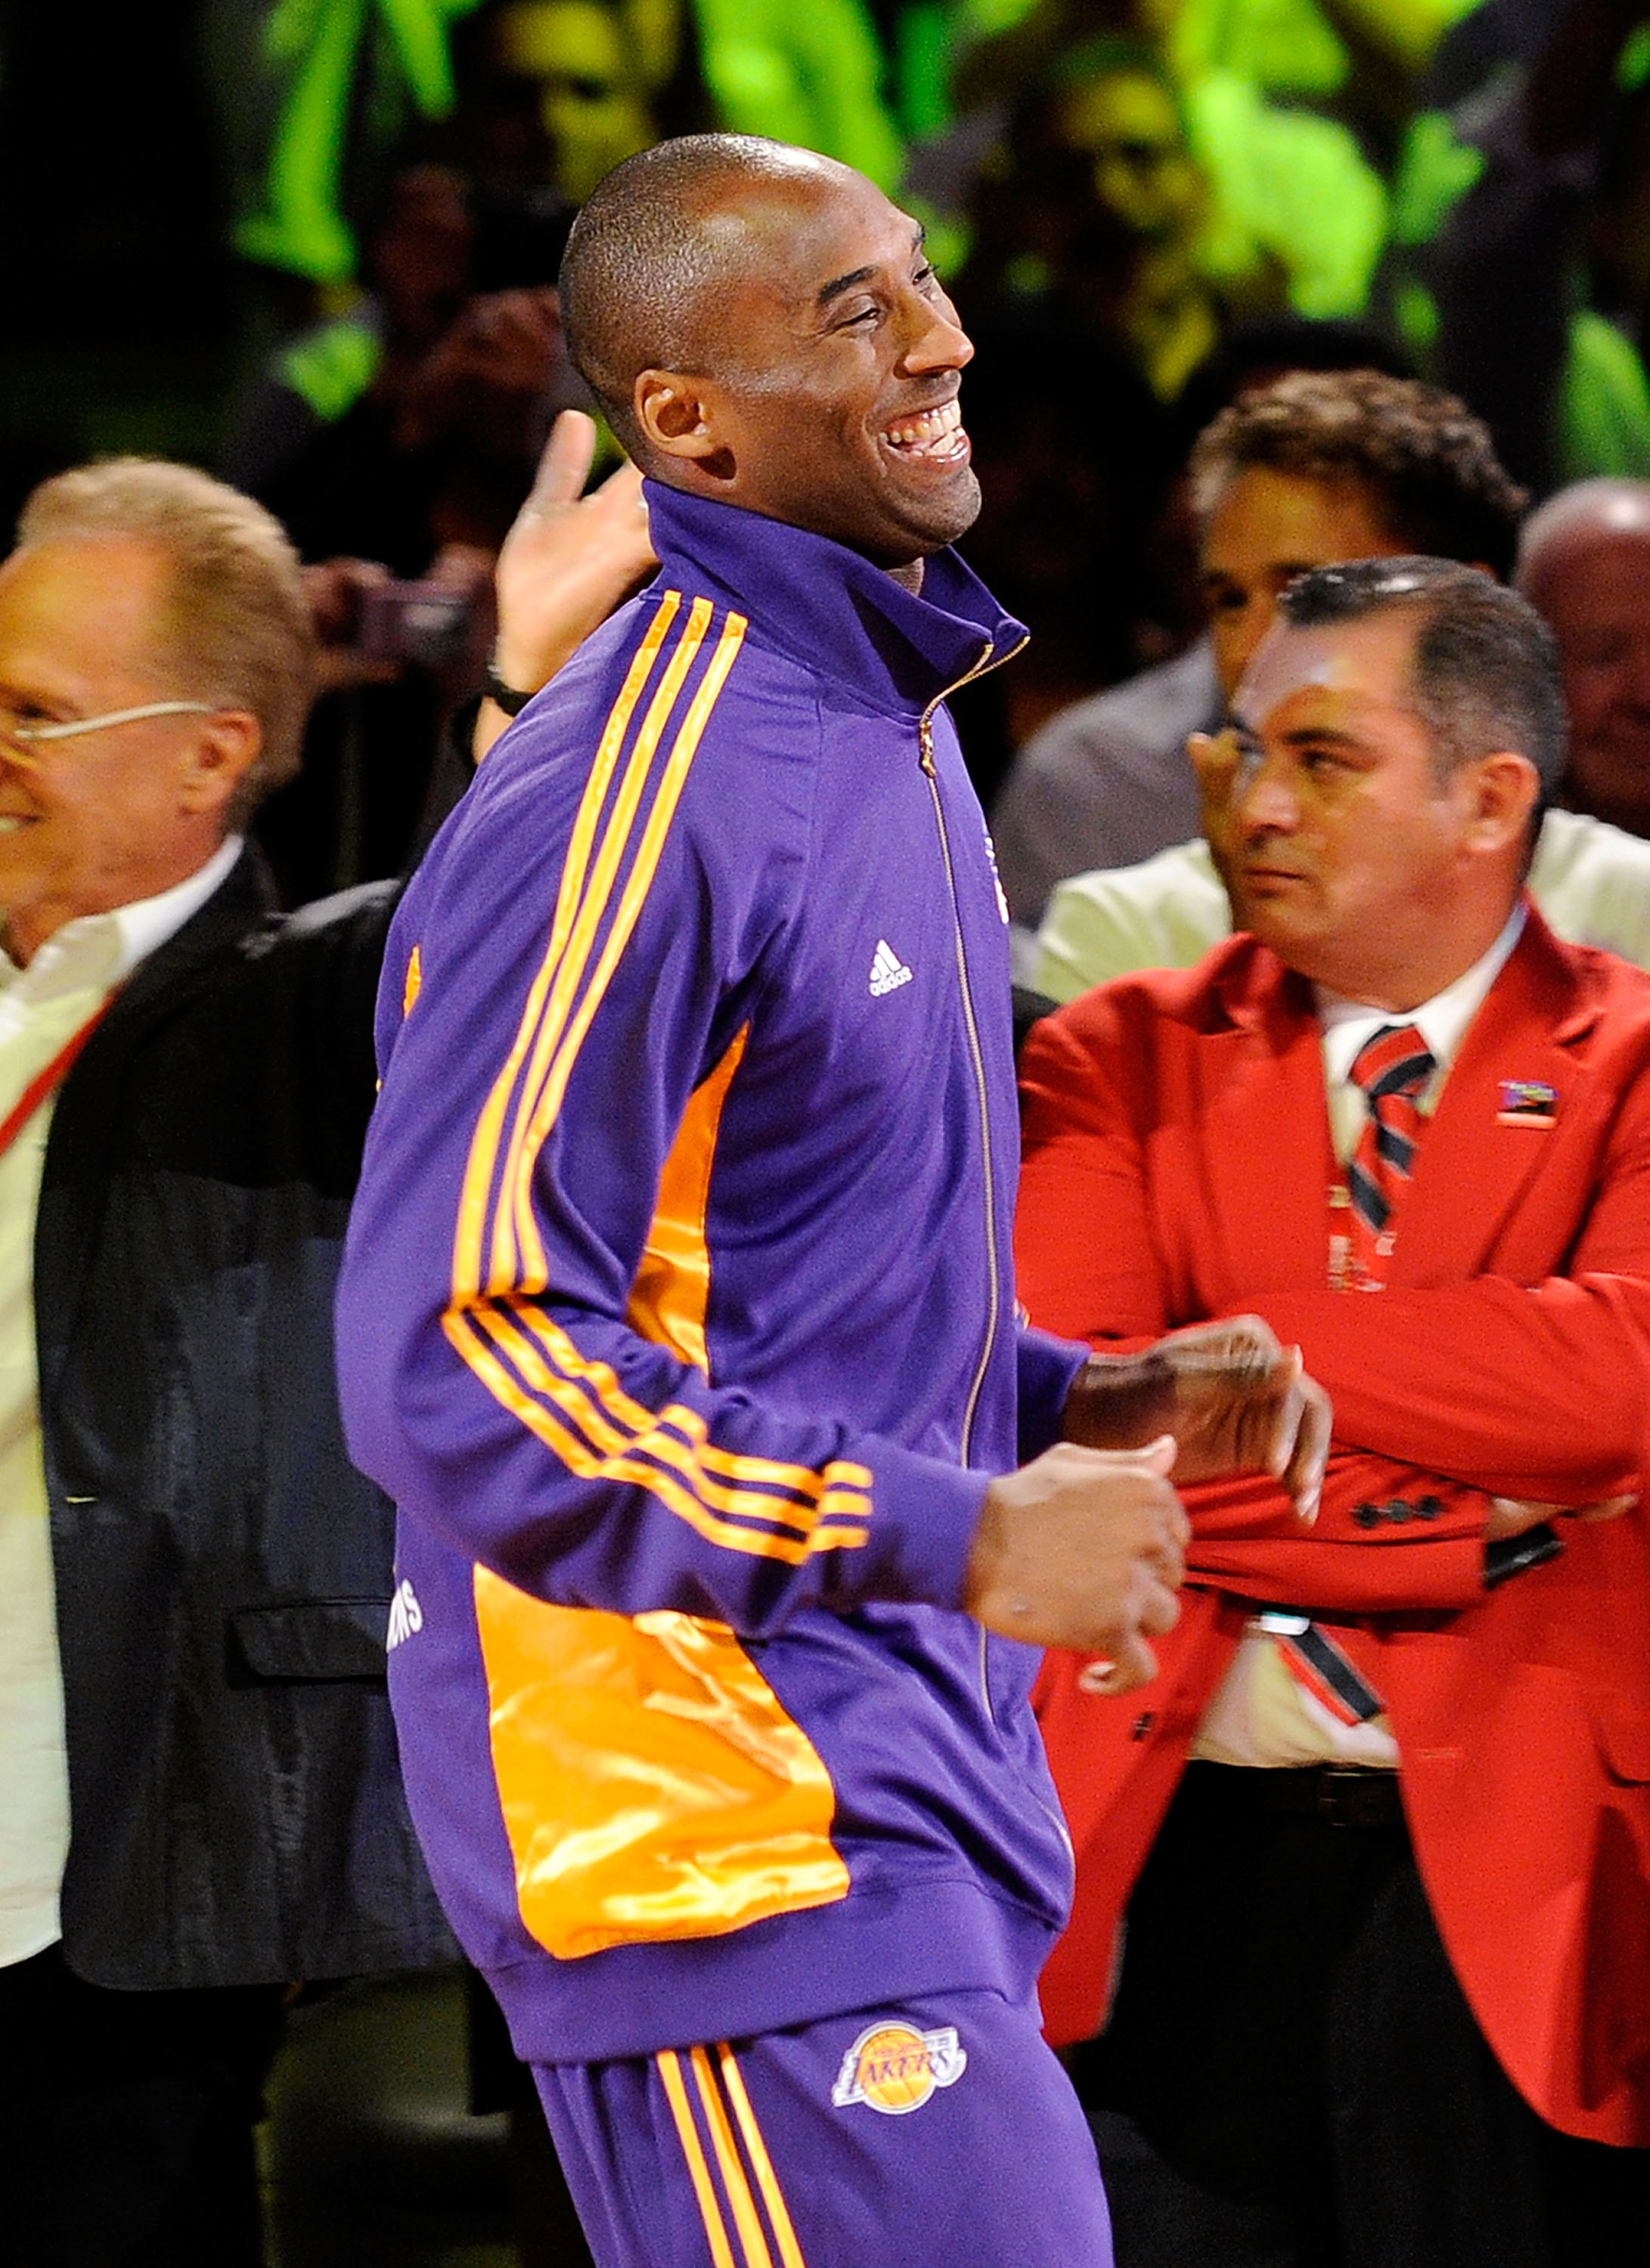 LOS ANGELES, CA - OCTOBER 27:  Kobe Bryant #24 of the Los Angeles Lakers smiles as he prepares to receive his 2009 NBA Championship ring before the season opening game against the Los Angeles Clippers at Staples Center on October 27, 2009 in Los Angeles,